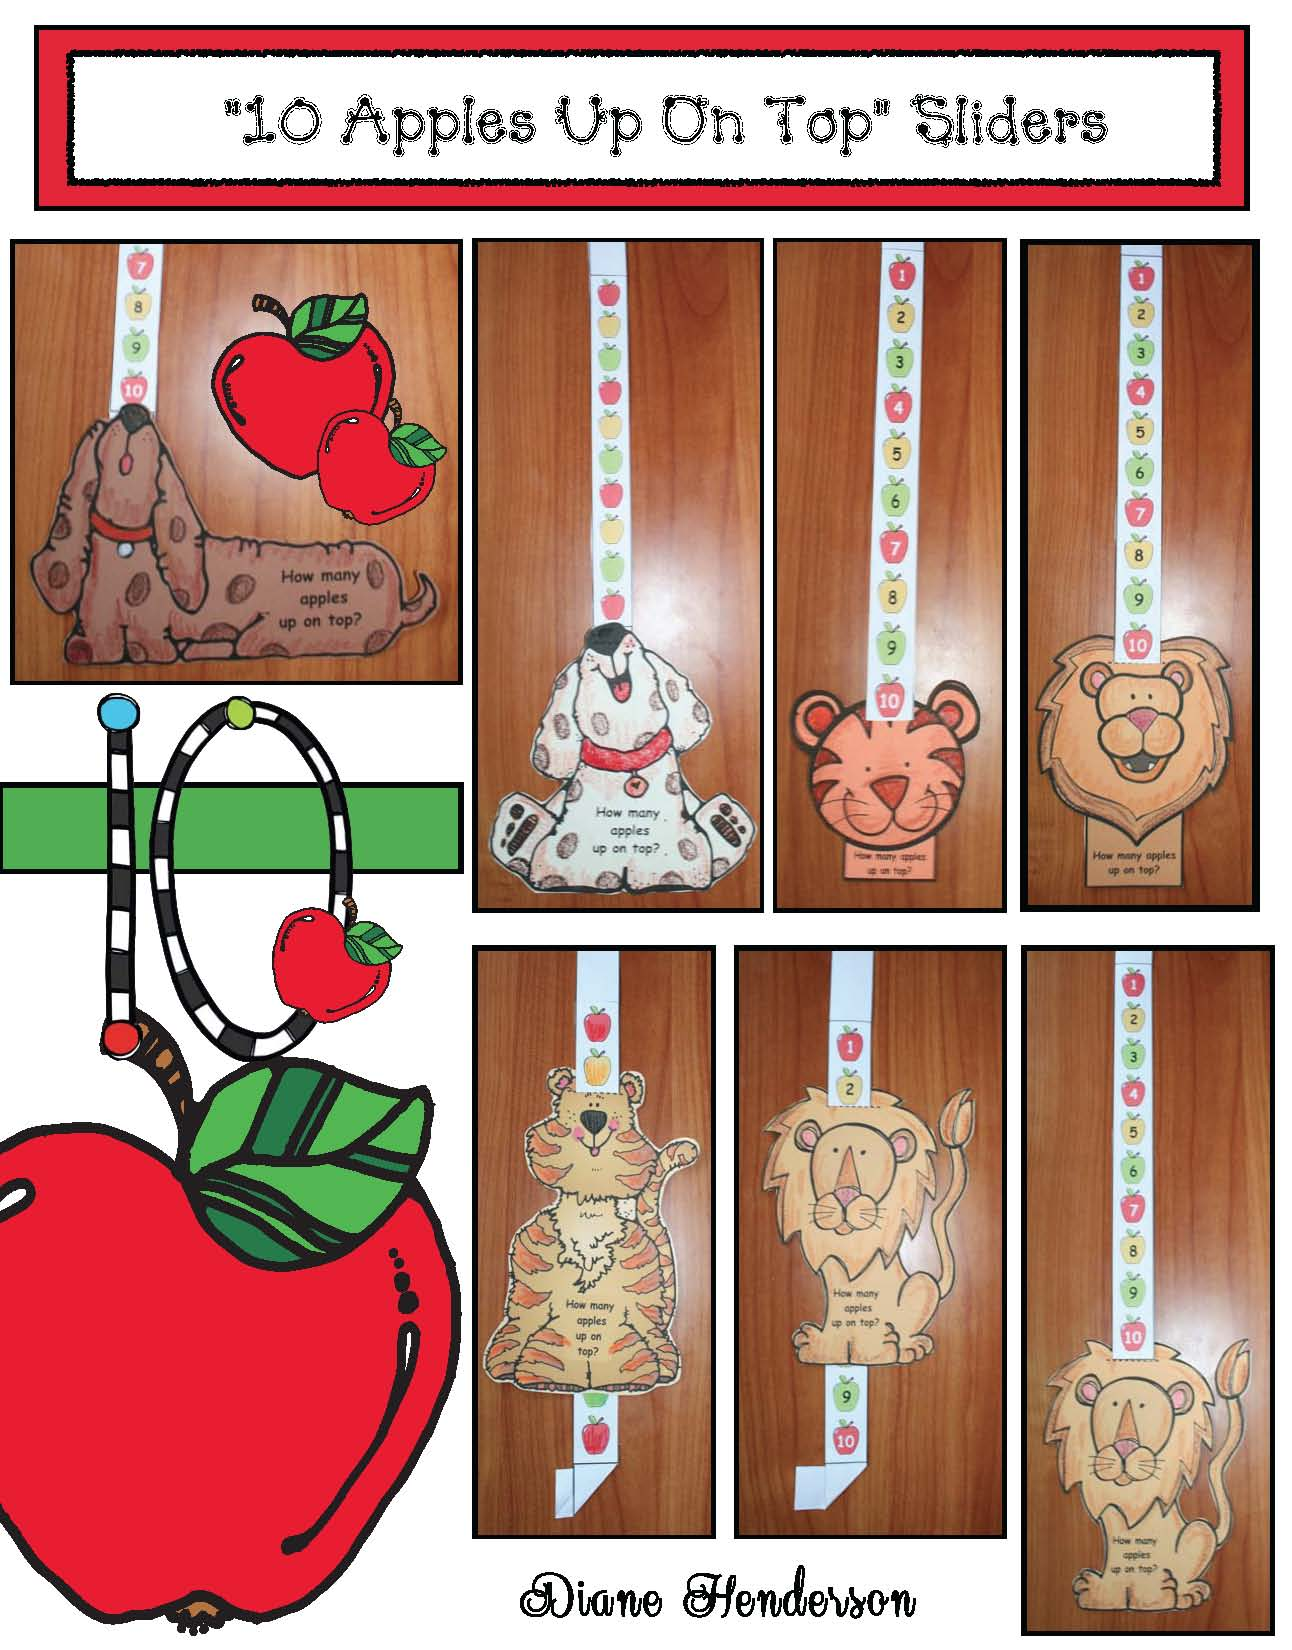 Dr. Seuss activities, 10 apples up on top activities, Dr. Seuss crafts, apple crafts, apple activities, counting backwards activities